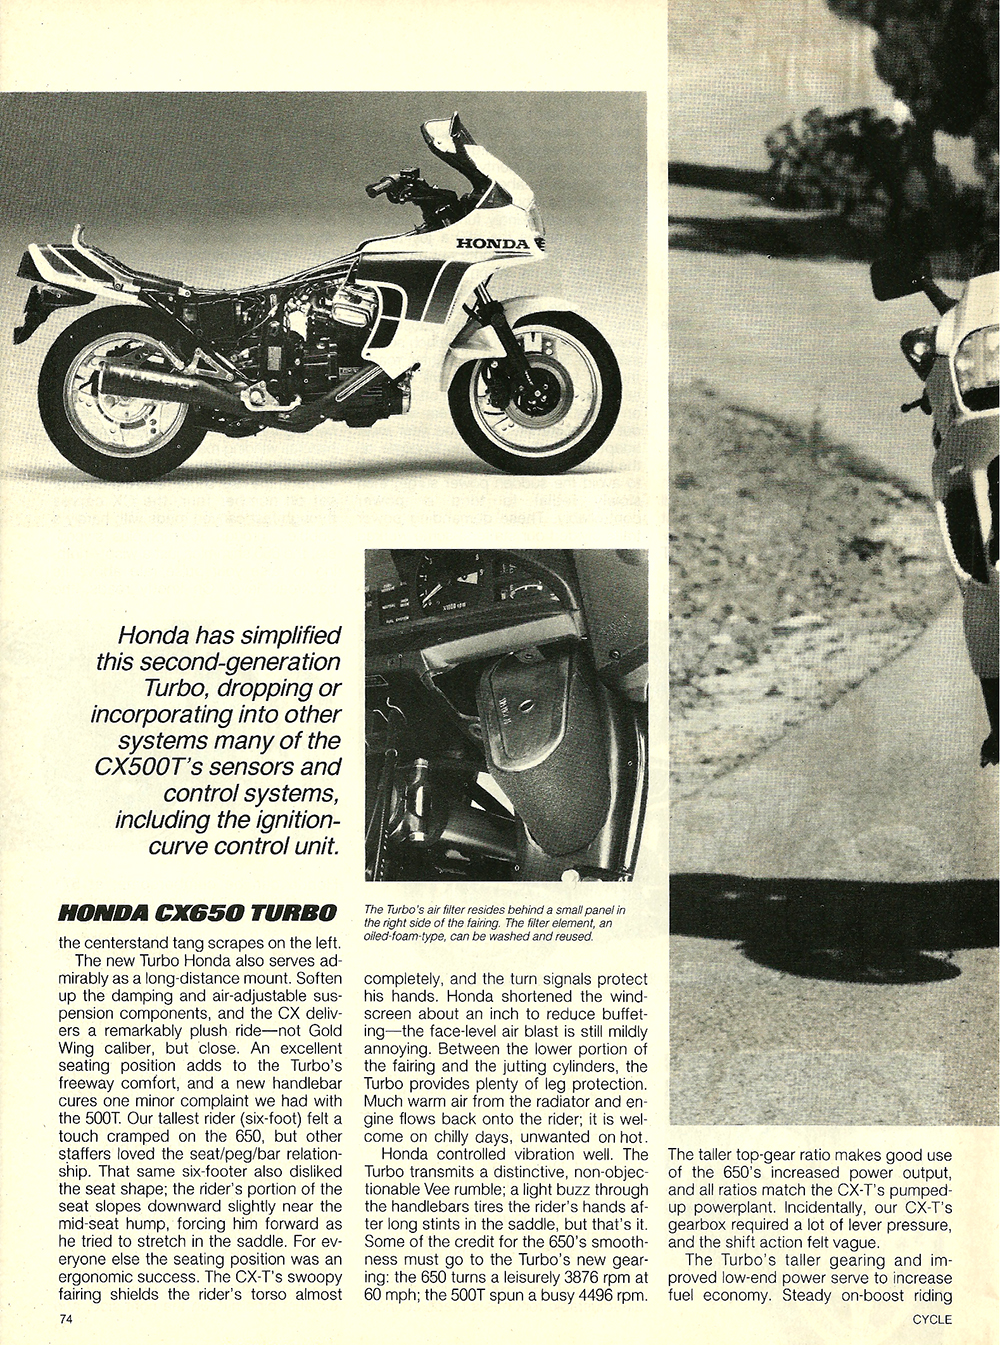 1983 Honda CX650 turbo road test 5.jpg